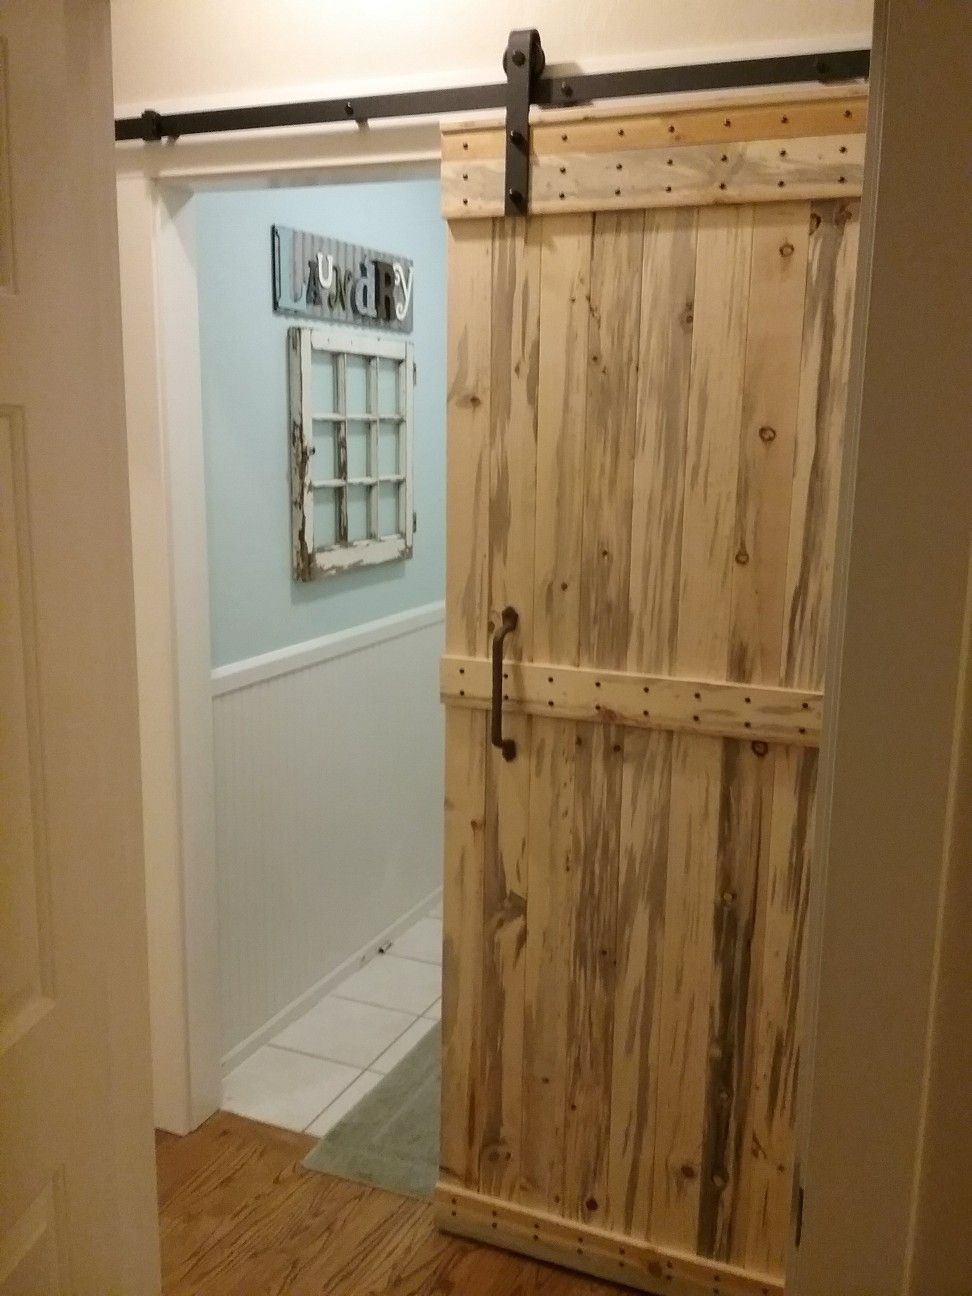 Finally Finished The Barn Door For Our Laundry Room Used N W Beatle Kill Pine Blue Pine Locally Sourced Green Product Svw Sliding Doors Laundry Room Doors